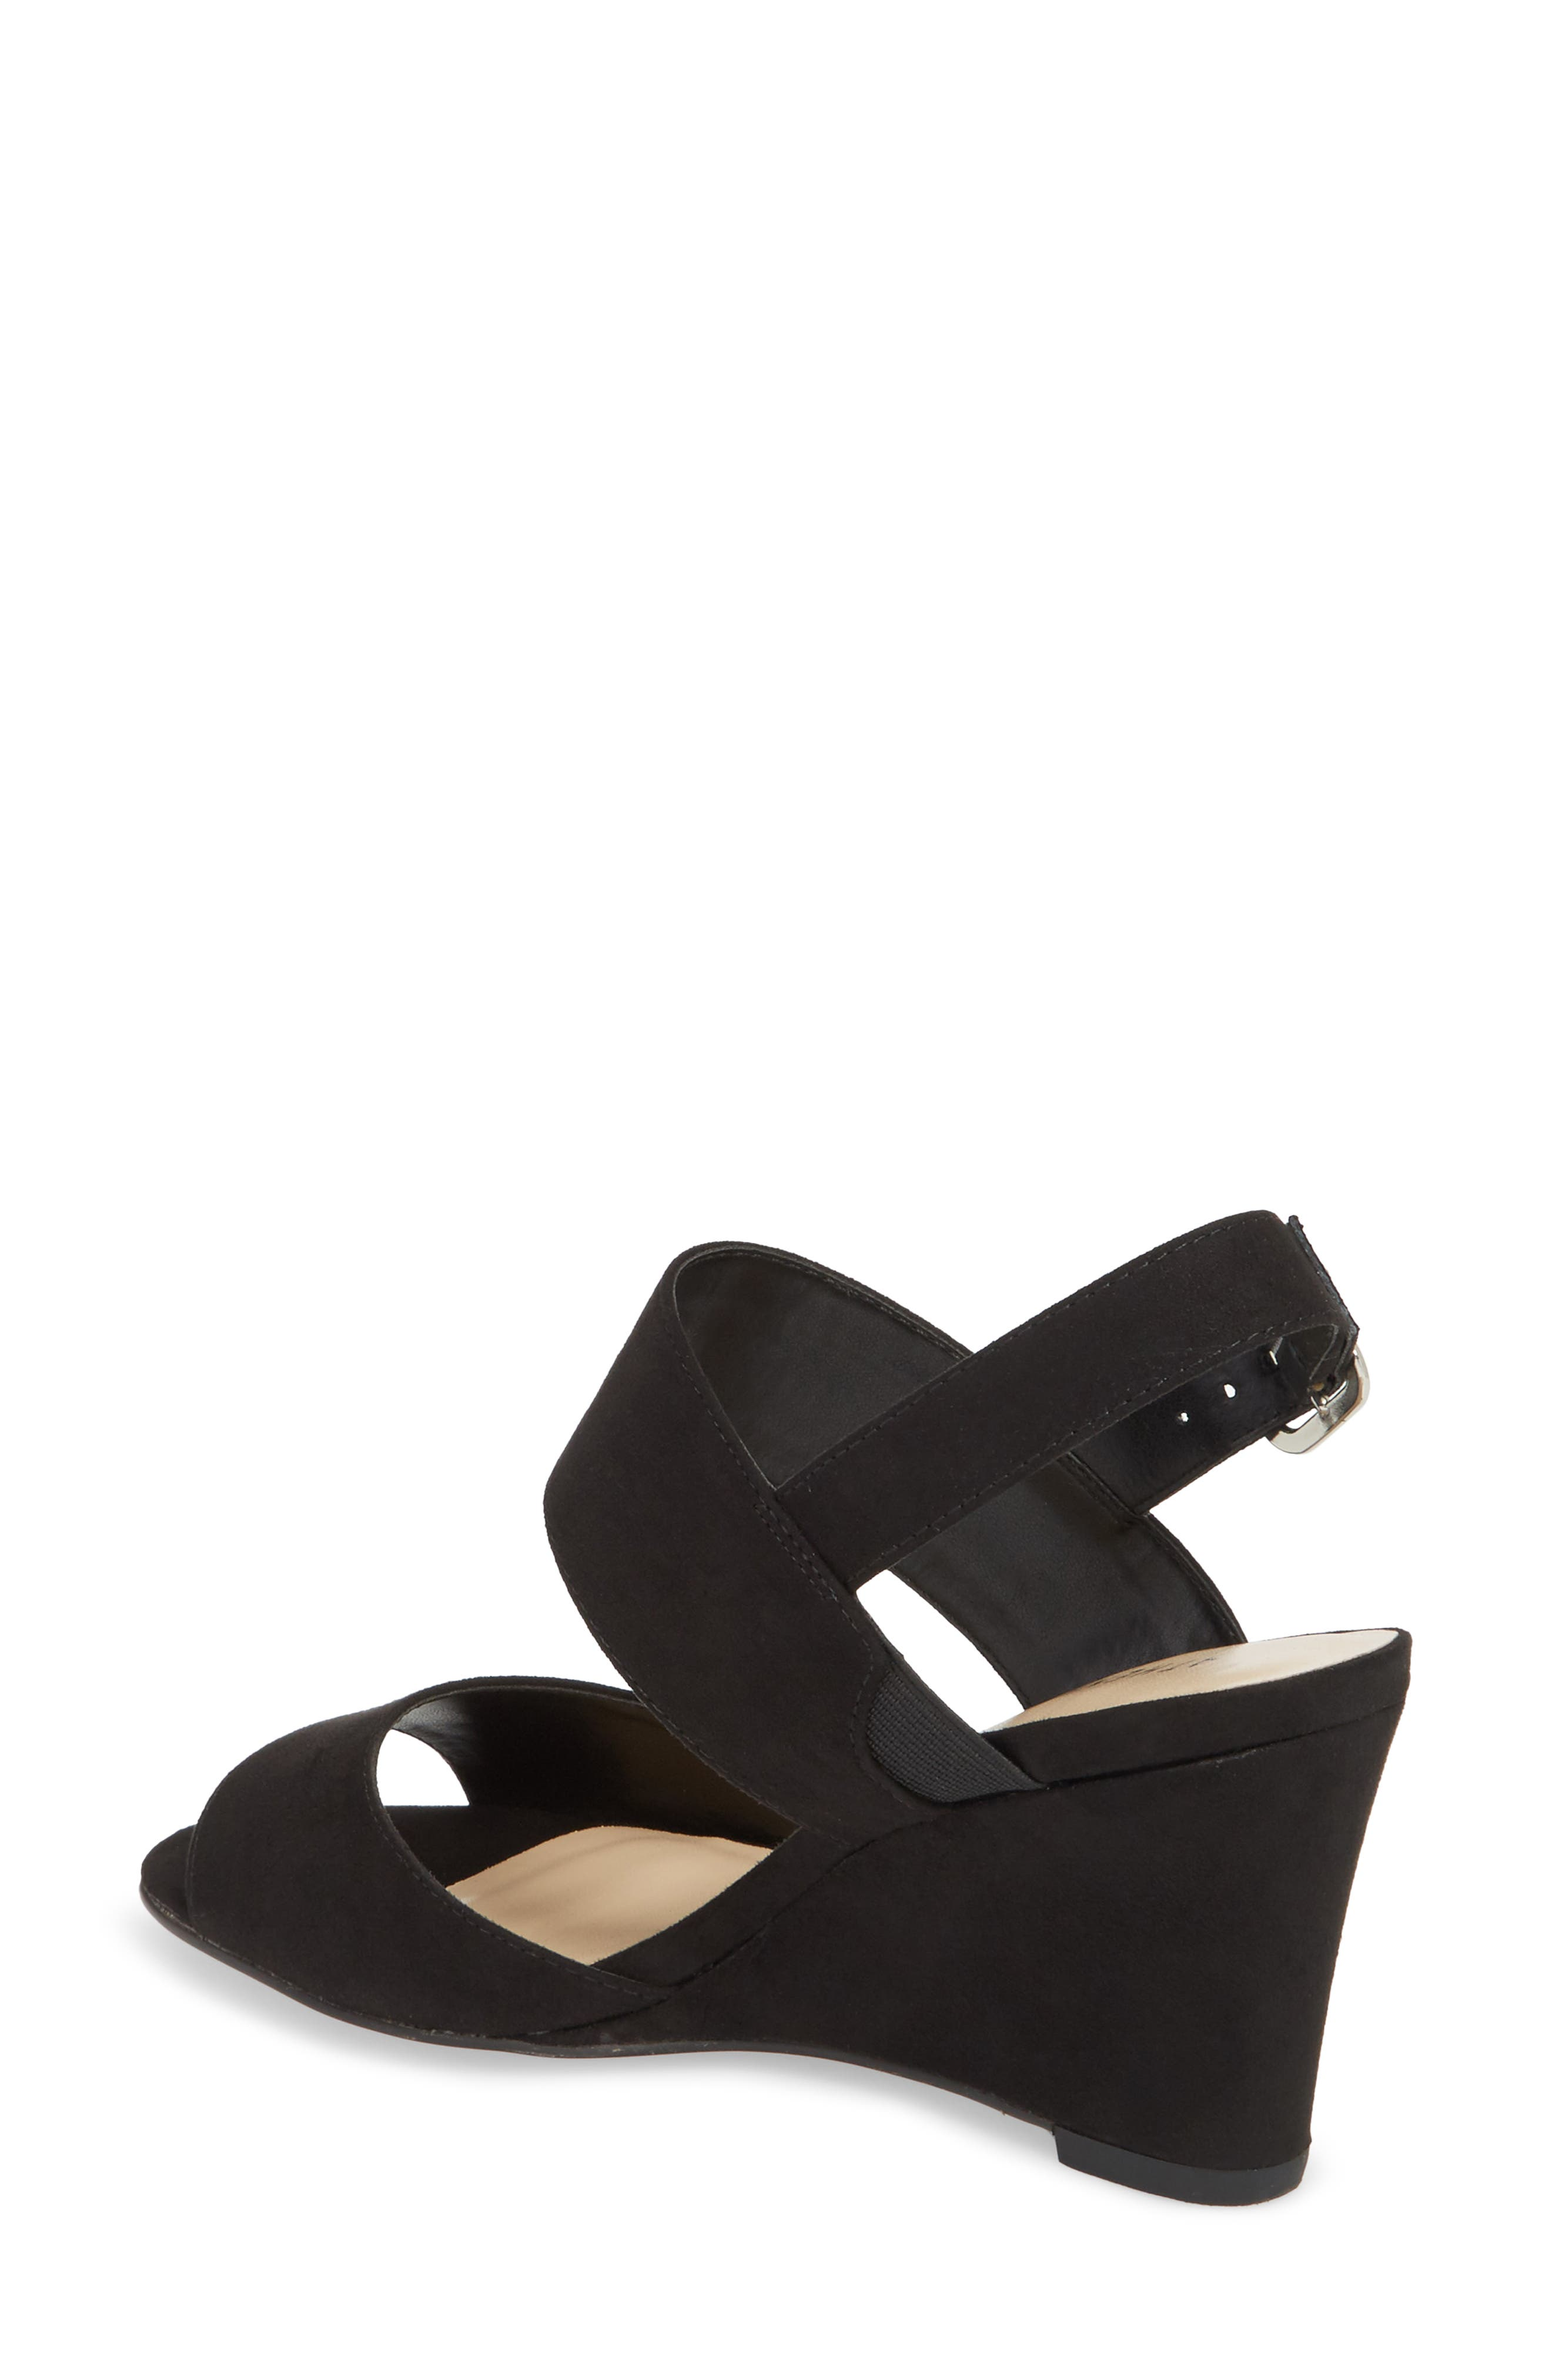 Slayte Wedge Sandal,                             Alternate thumbnail 2, color,                             BLACK FAUX SUEDE